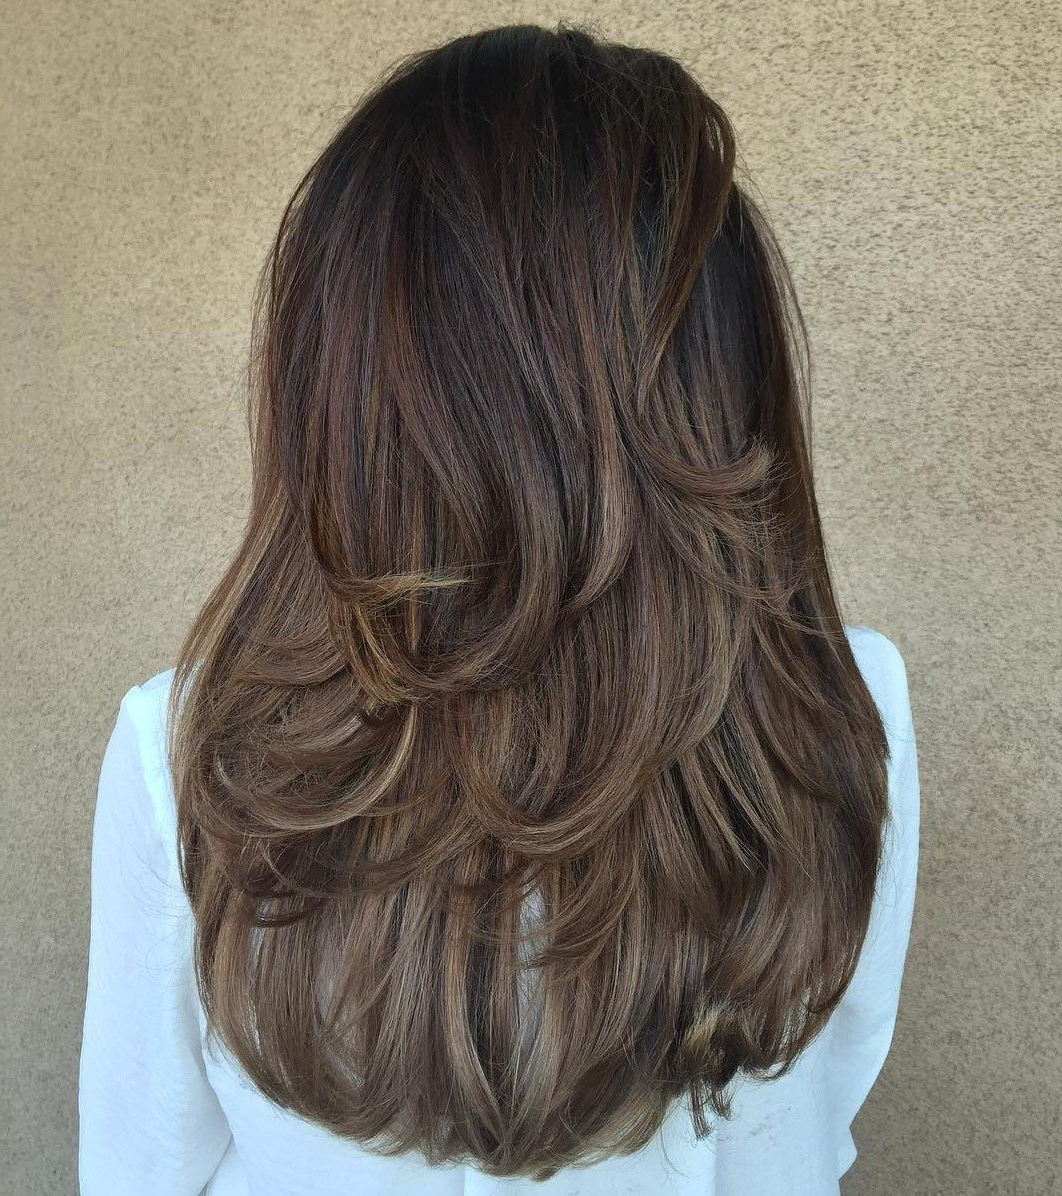 Well Known Mid Back Brown U Shaped Haircuts With Swoopy Layers Inside 80 Cute Layered Hairstyles And Cuts For Long Hair In 2019 (Gallery 1 of 20)